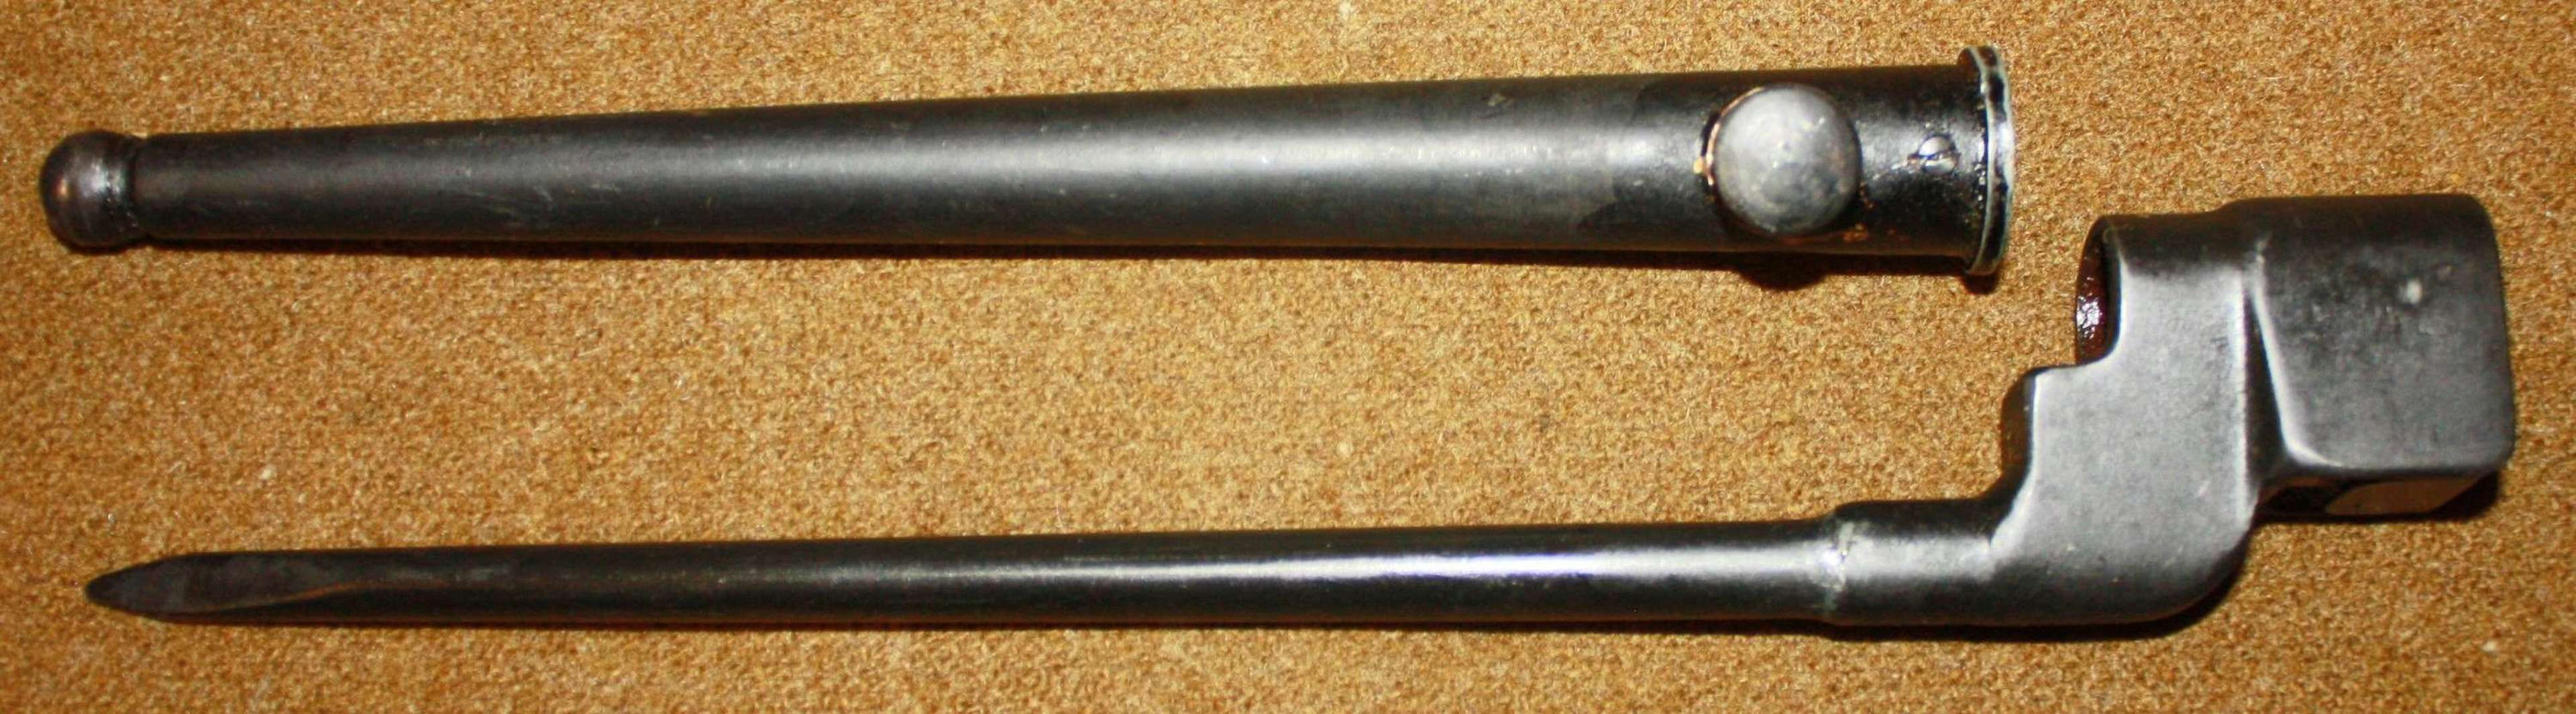 A VERY GOOD WWII NO4 MKII BAYONET VERY CLEAN AND TIDY EXAMPLE